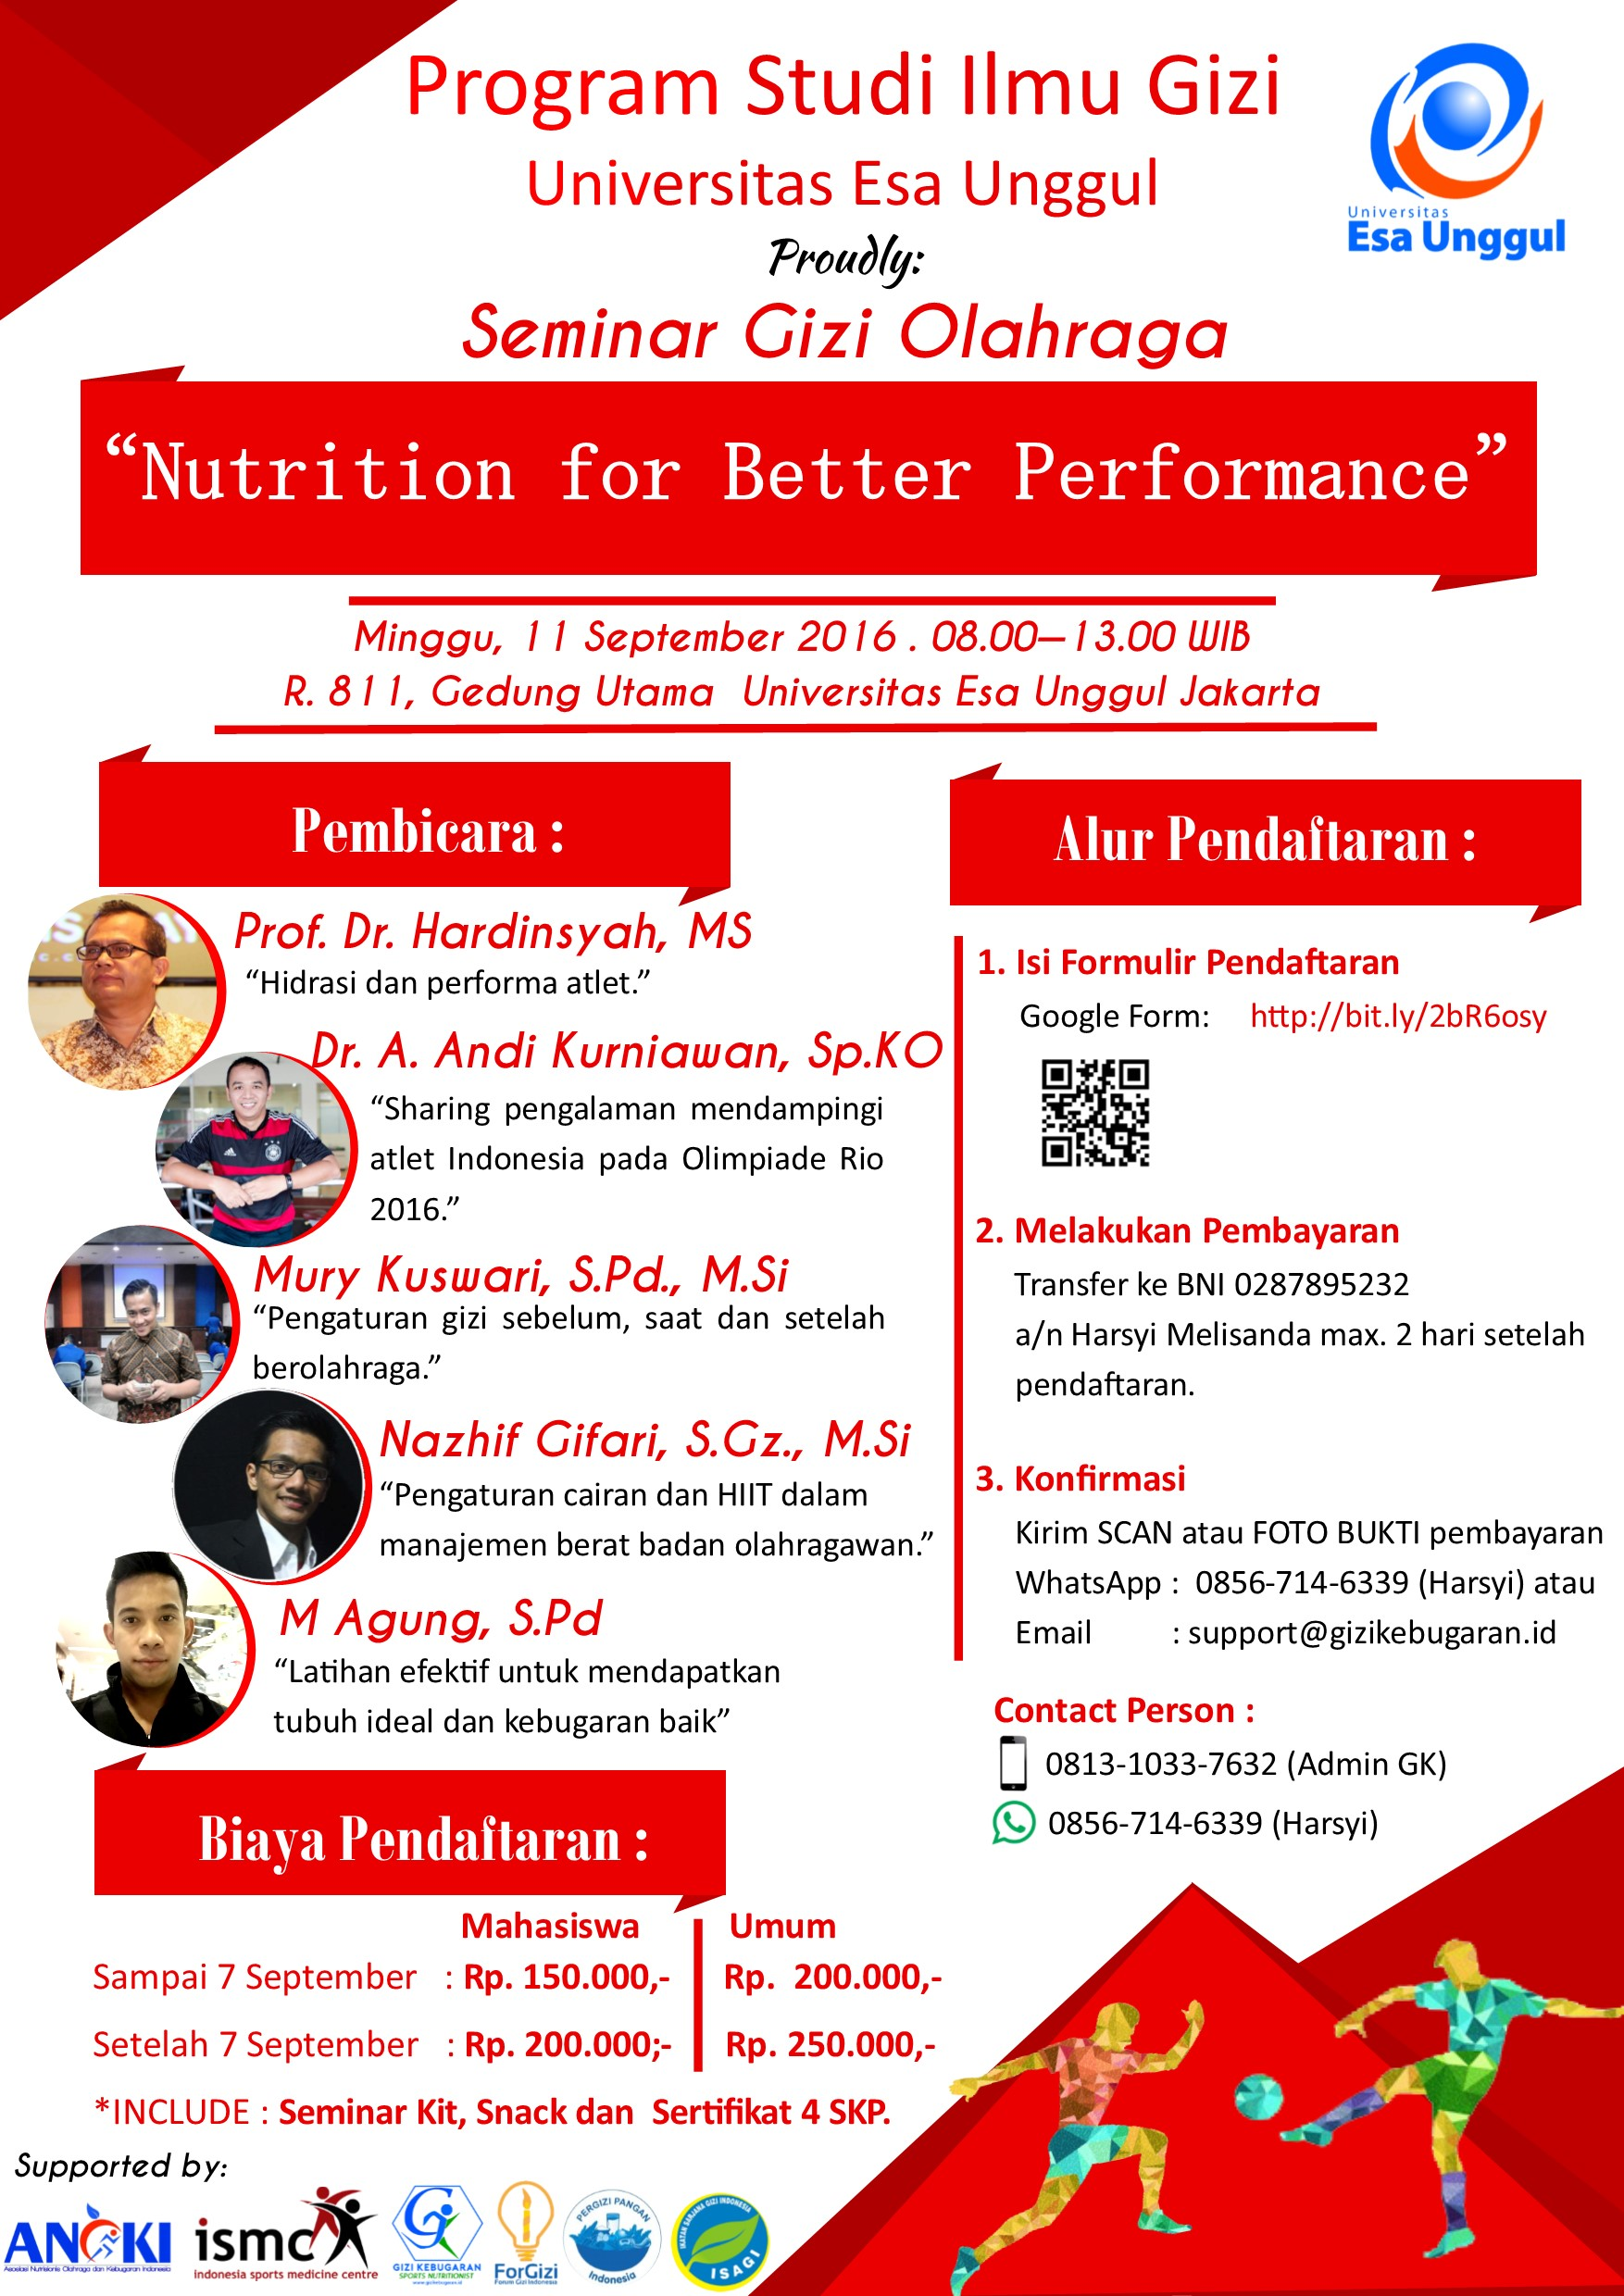 Nutrition for Better Performance 2016